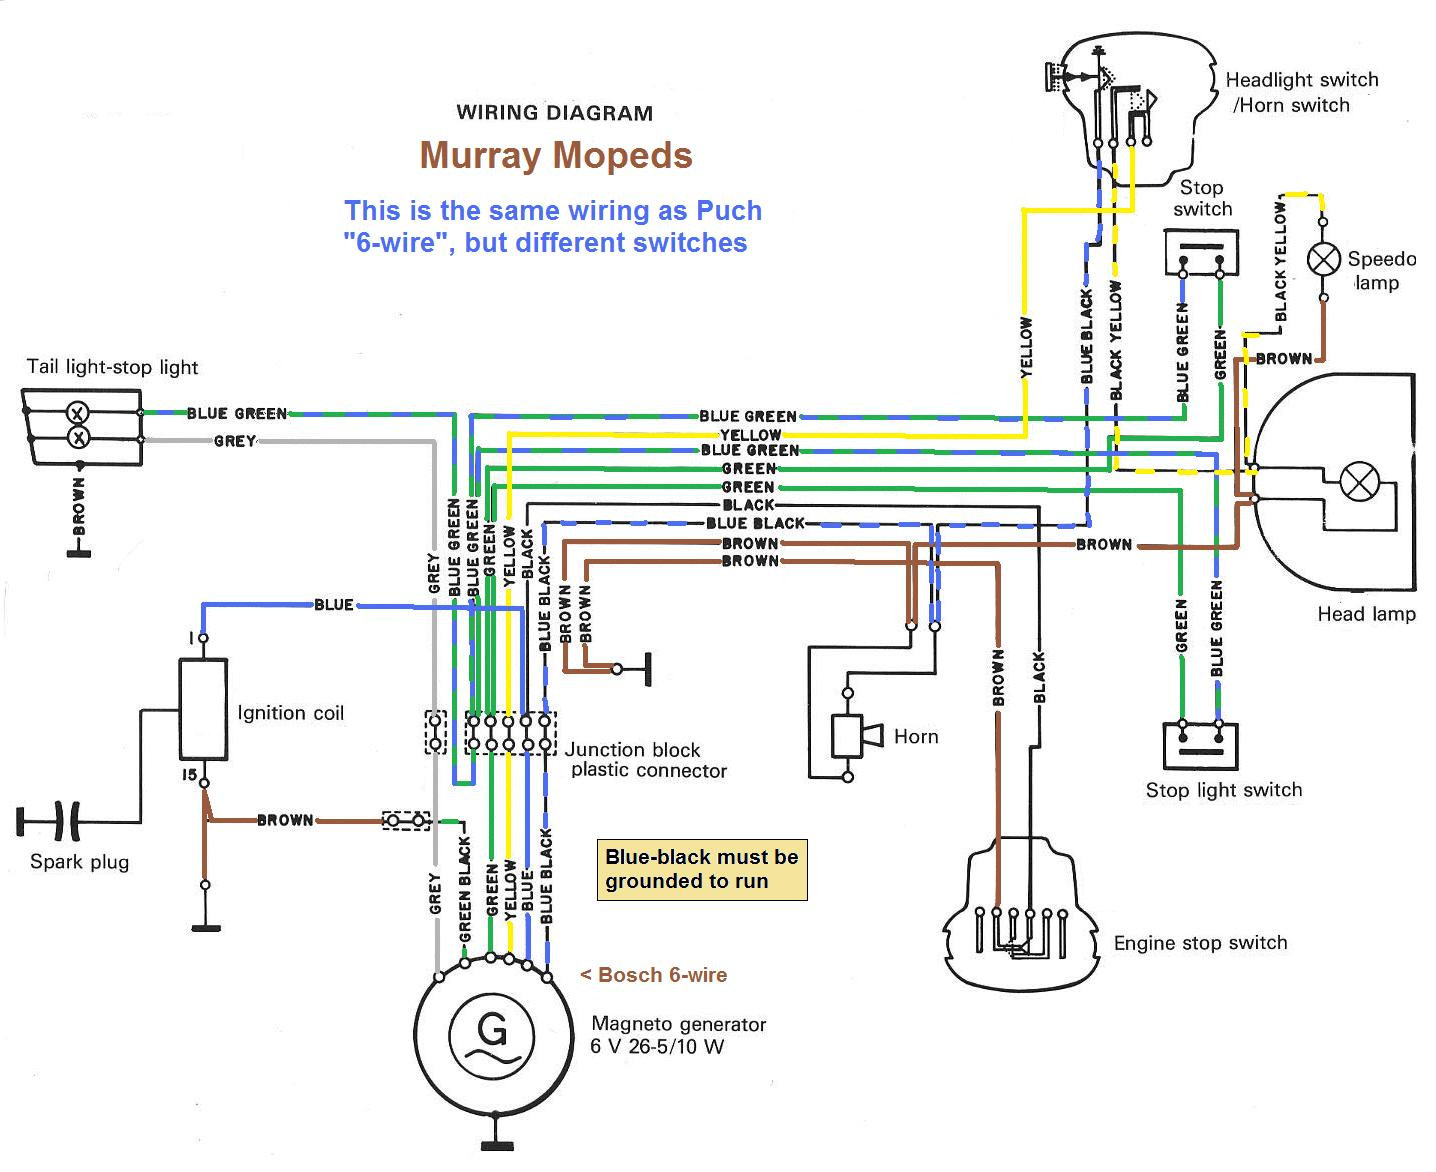 Murray 42544x8c Ignition Wiring Diagram | Wiring Diagram on murray carburetor linkage diagram, murray 46500x92a lawn tractor briggs stratton diagram for 1999, murray lawn tractor diode, murray tractor wiring diagram,